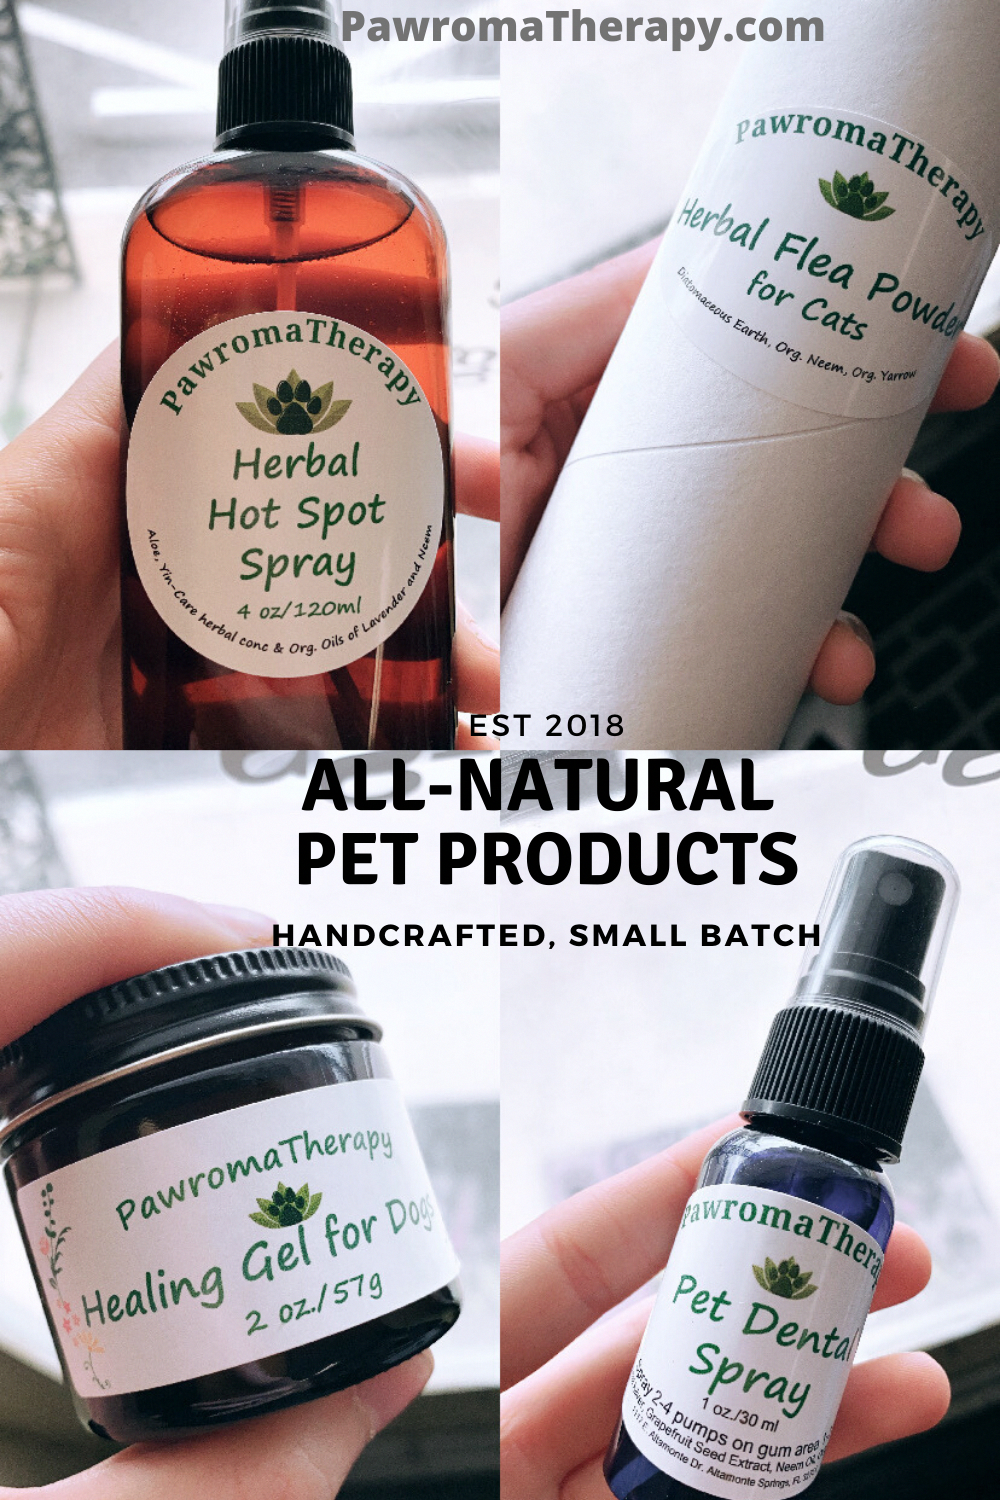 All Natural Dog, Cat Products, Handcrafted in 2020